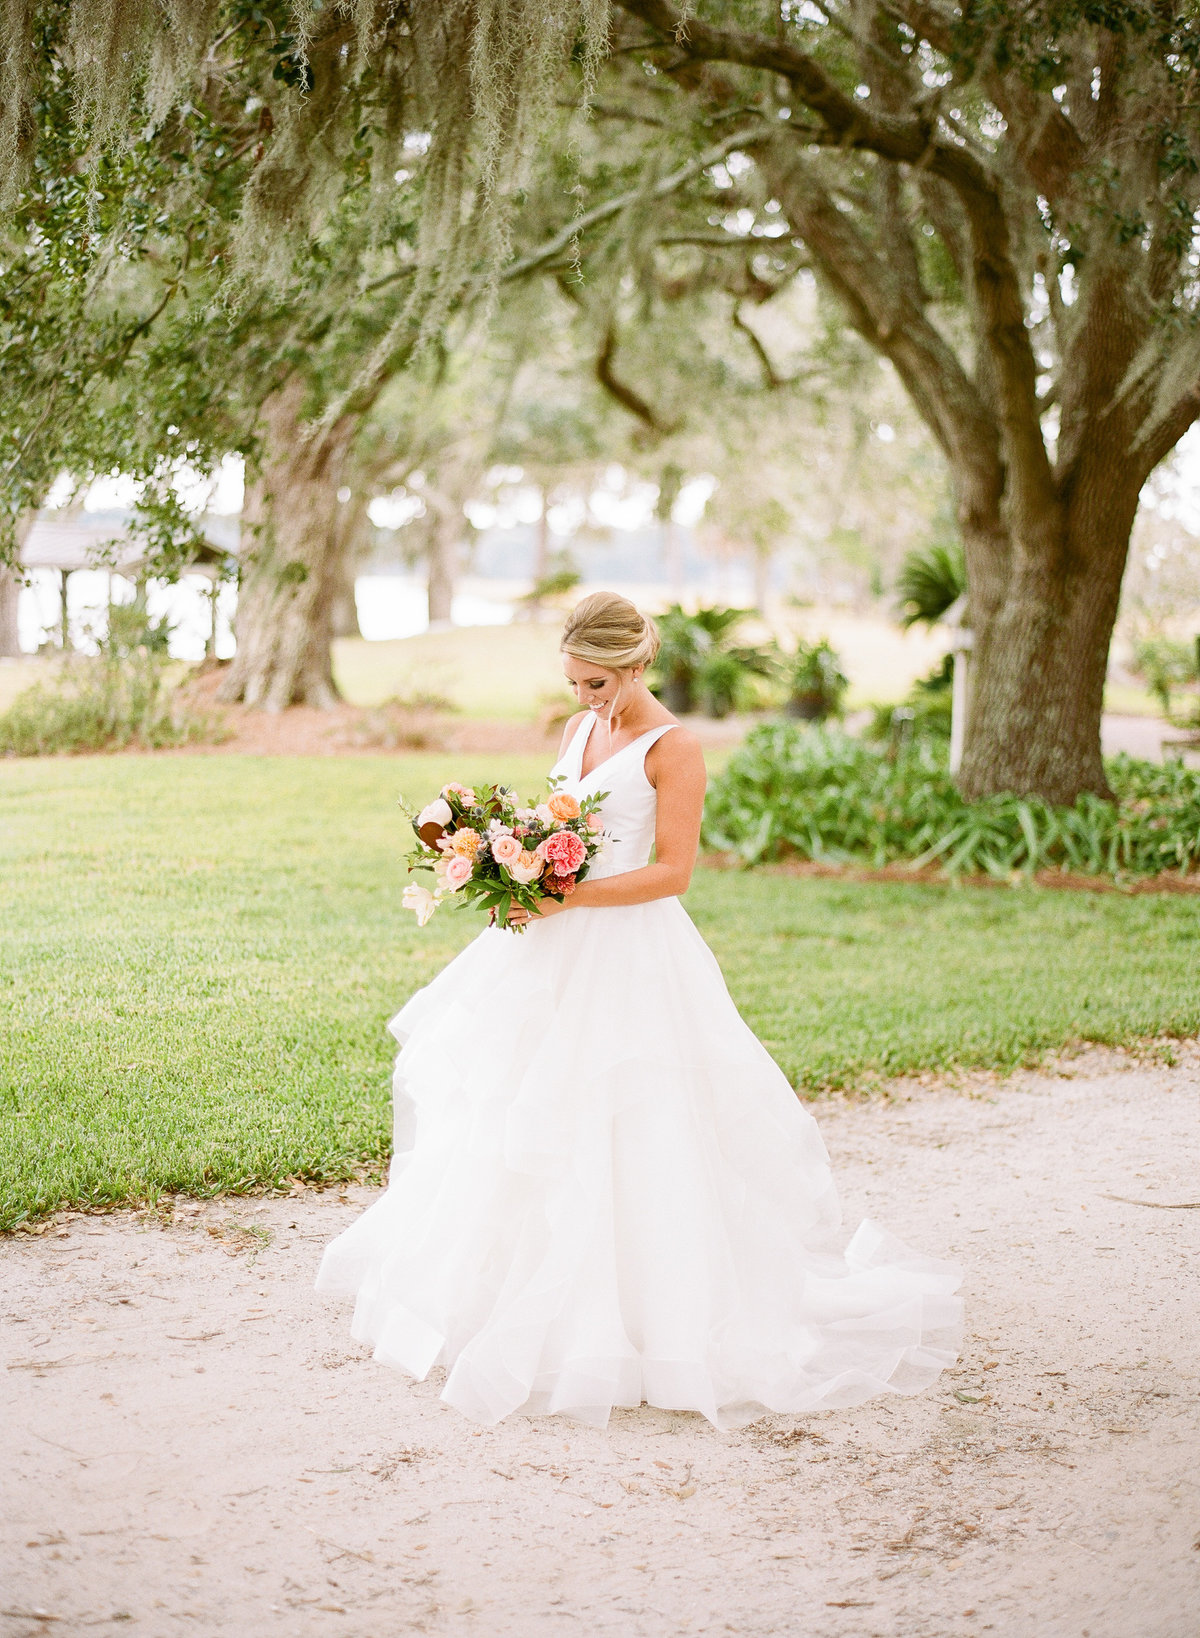 Bride Alexis in Modern Trousseau Ball Gown with Colorful bouquet from Branch Design Studio Charleston Wedding